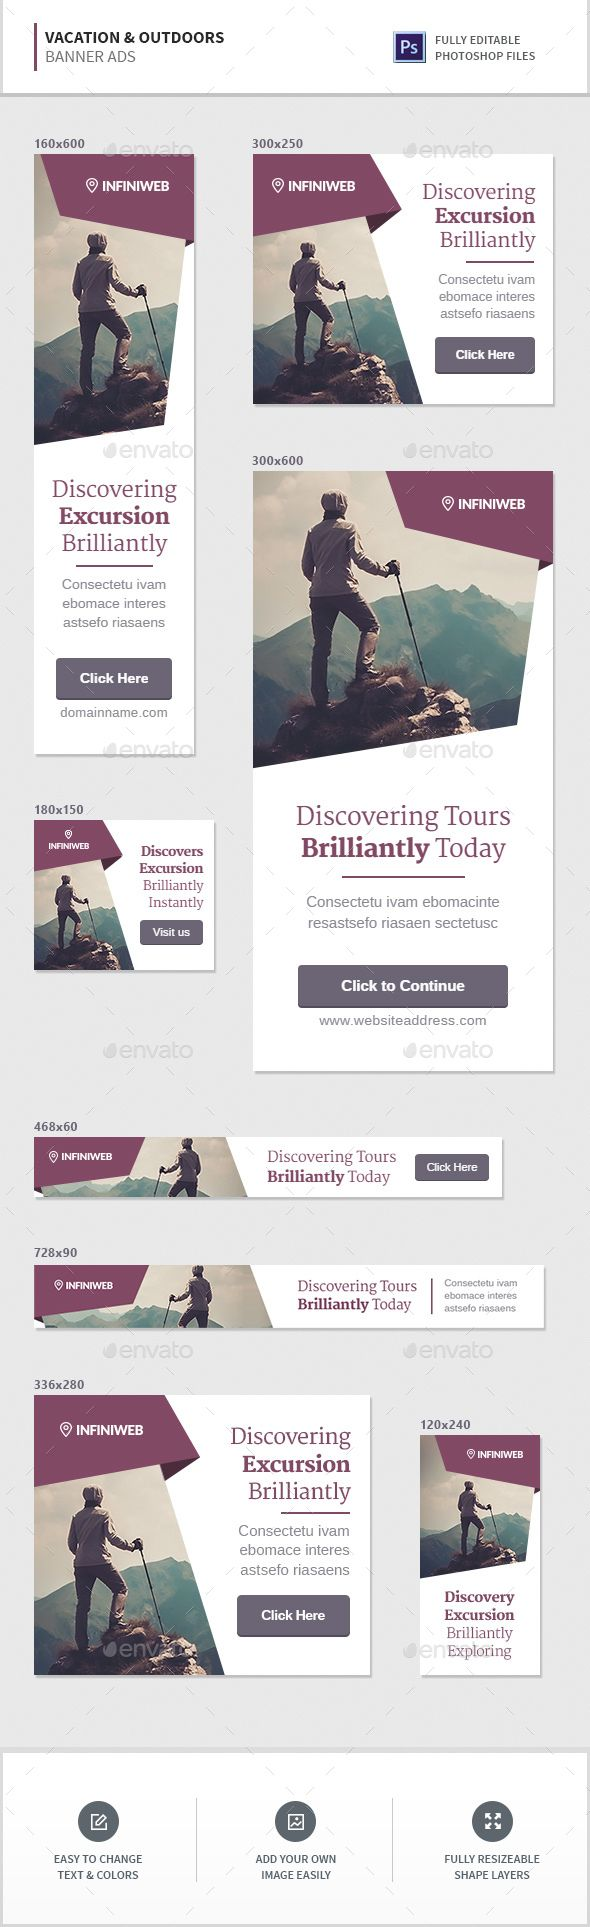 Vacation & Outdoors Banners Template PSD. Download here: https://graphicriver.net/item/vacation-outdoors-banners/17416787?ref=ksioks